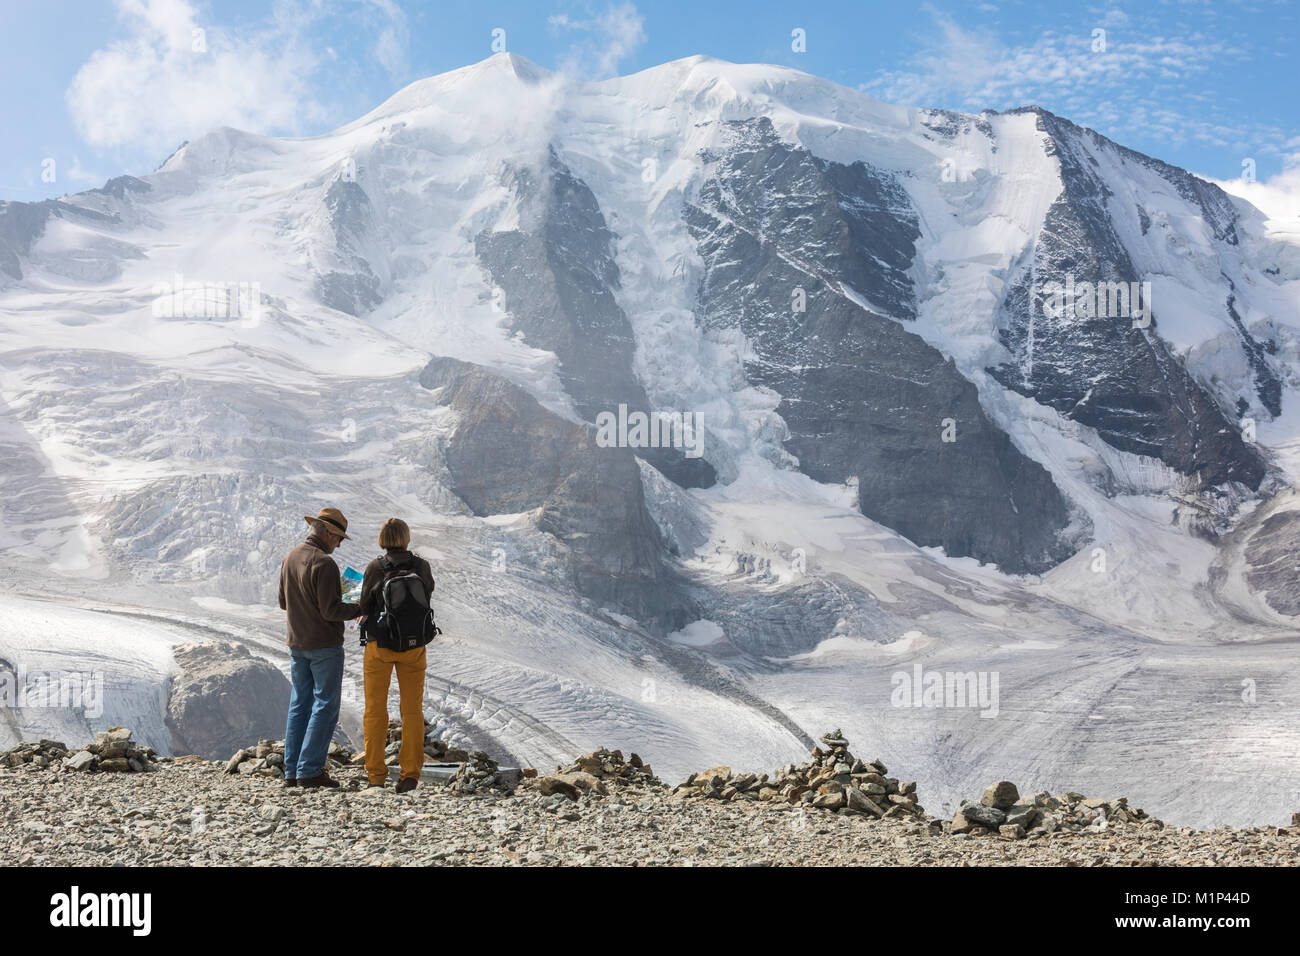 Tourists admire the Diavolezza and Pers glaciers and Piz Palu, St. Moritz, canton of Graubunden, Engadine, Switzerland, - Stock Image